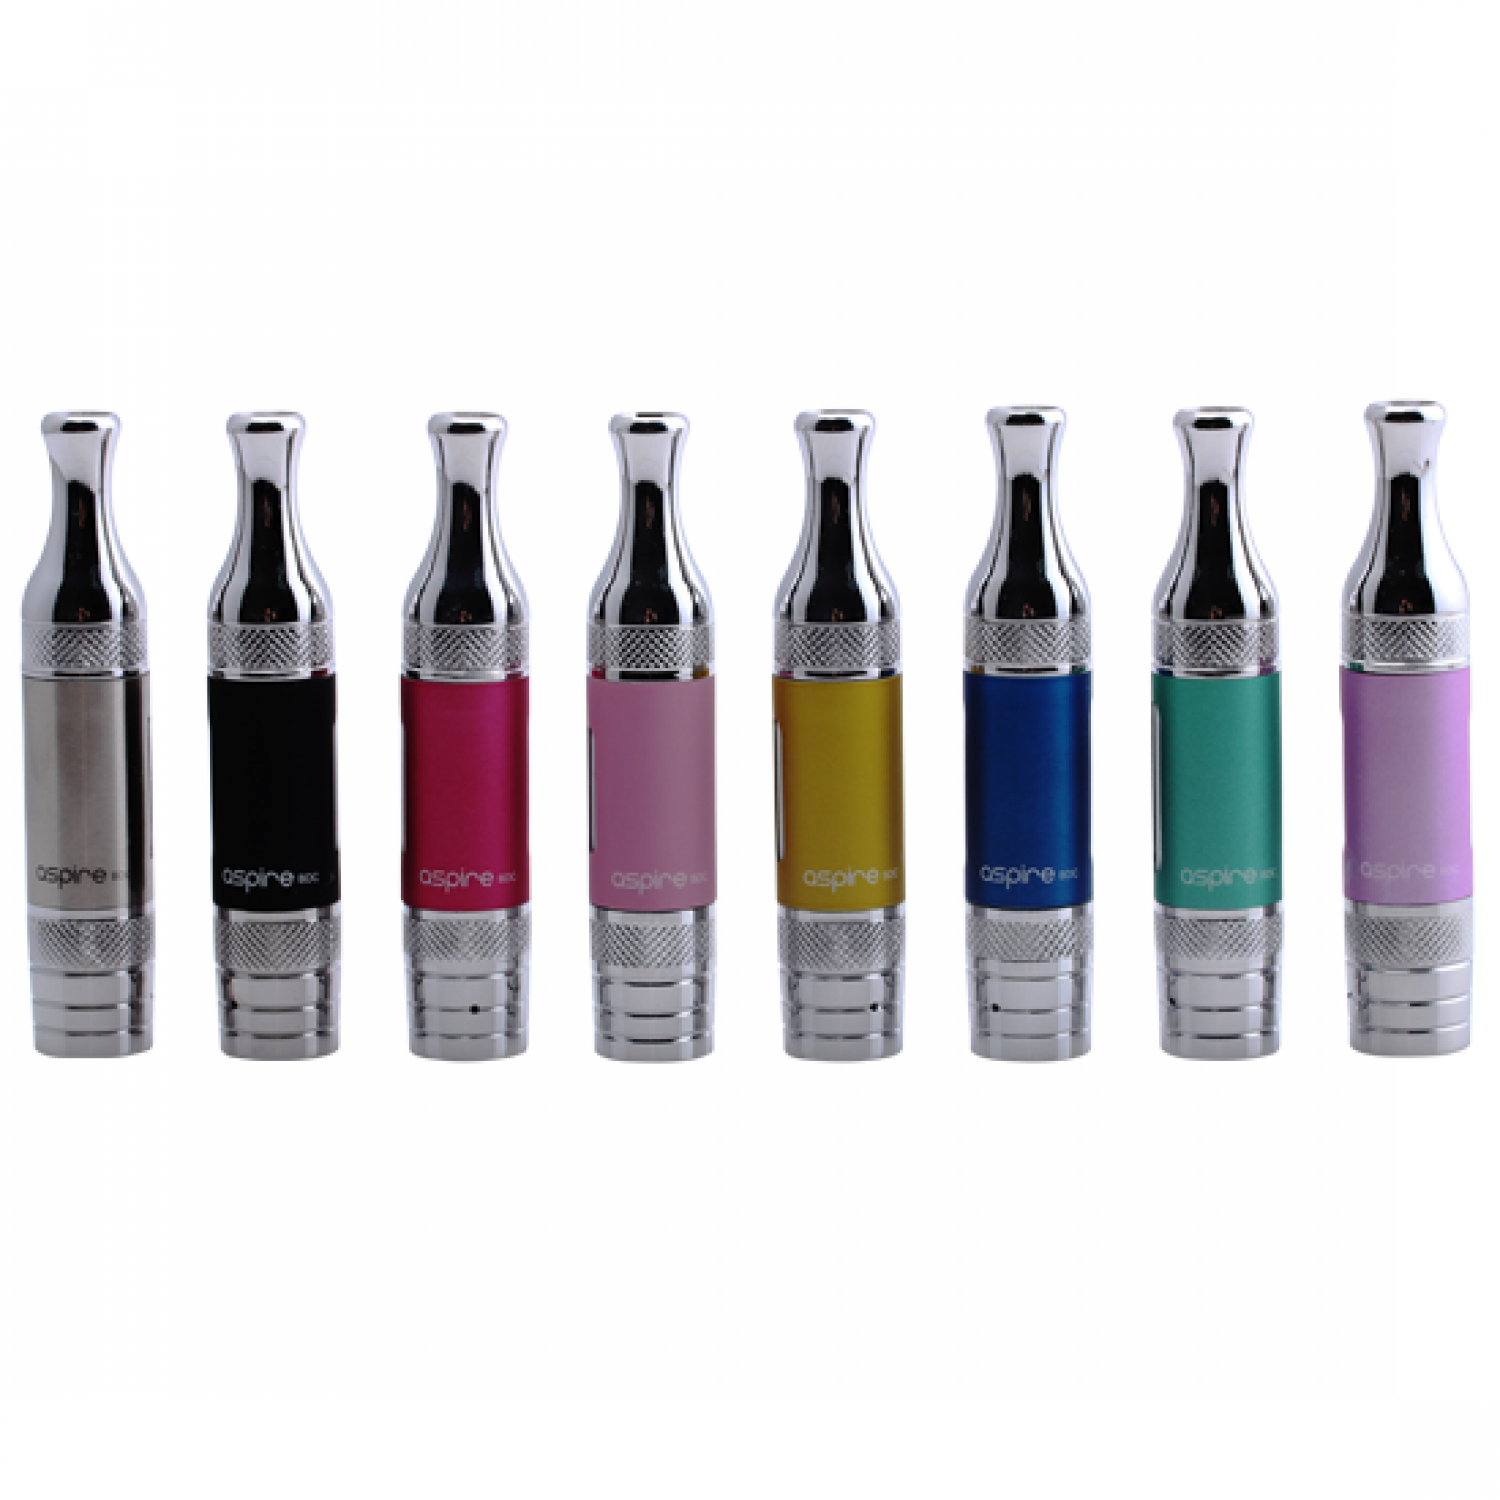 Aspire BVC ET-S Glass Version Clearomizer 1.8 Ohm